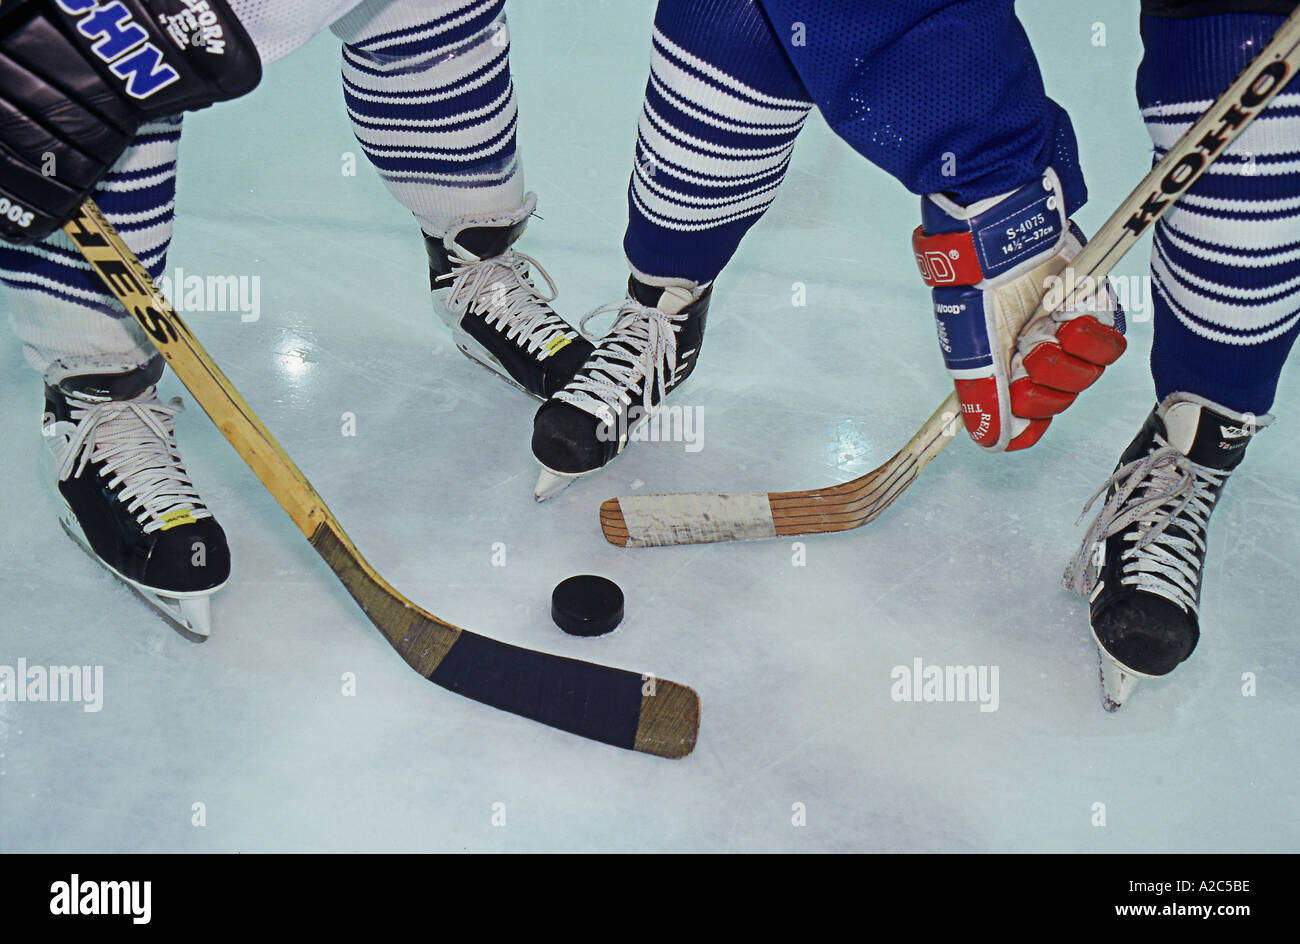 Close up of a hockey faceoff Hockey sticks are ready to slam the puck - Stock Image